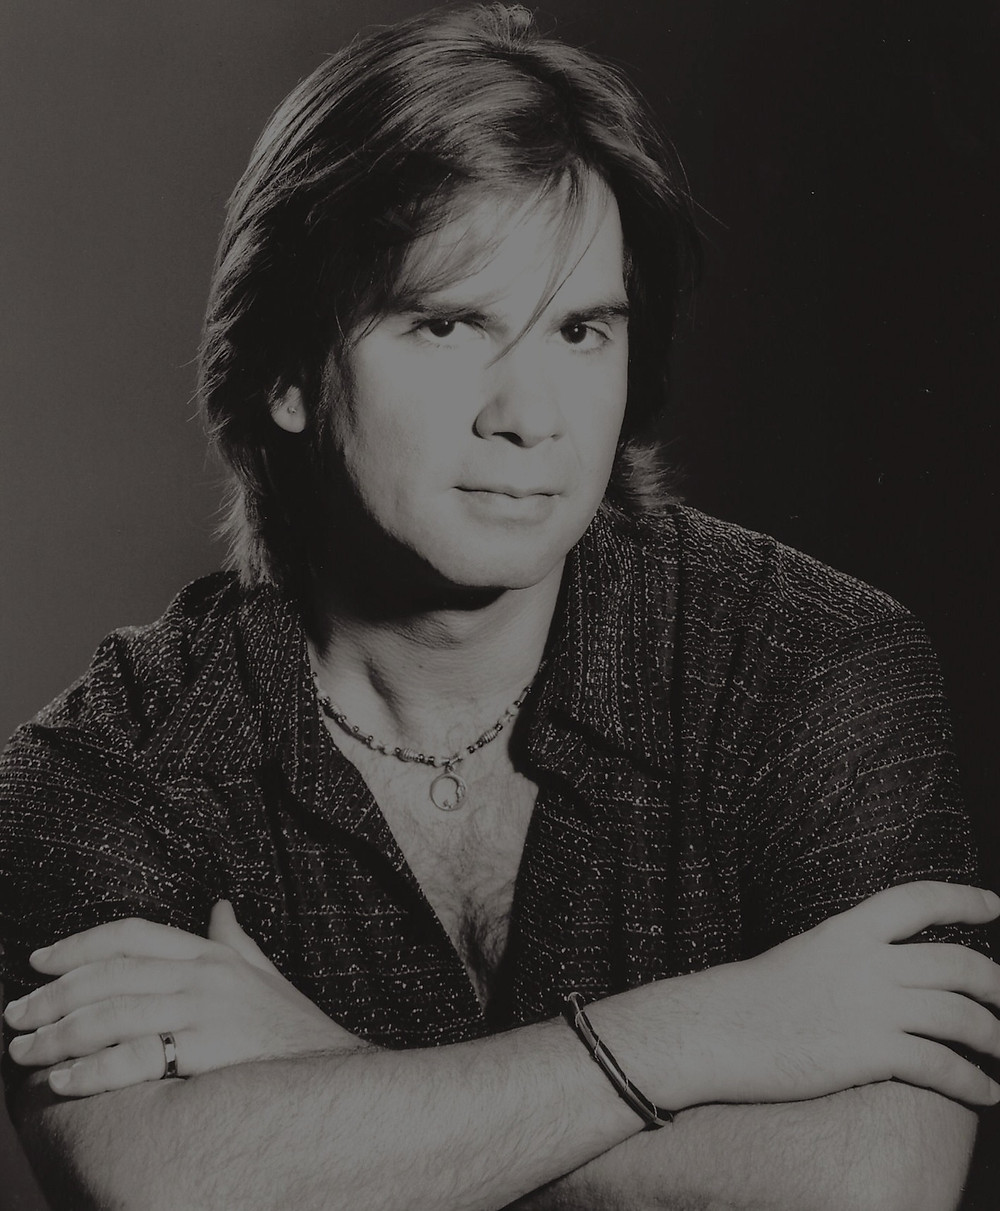 Daniel Link: Official GHOST STORIES press photo. 2001 by Brenda Ladd